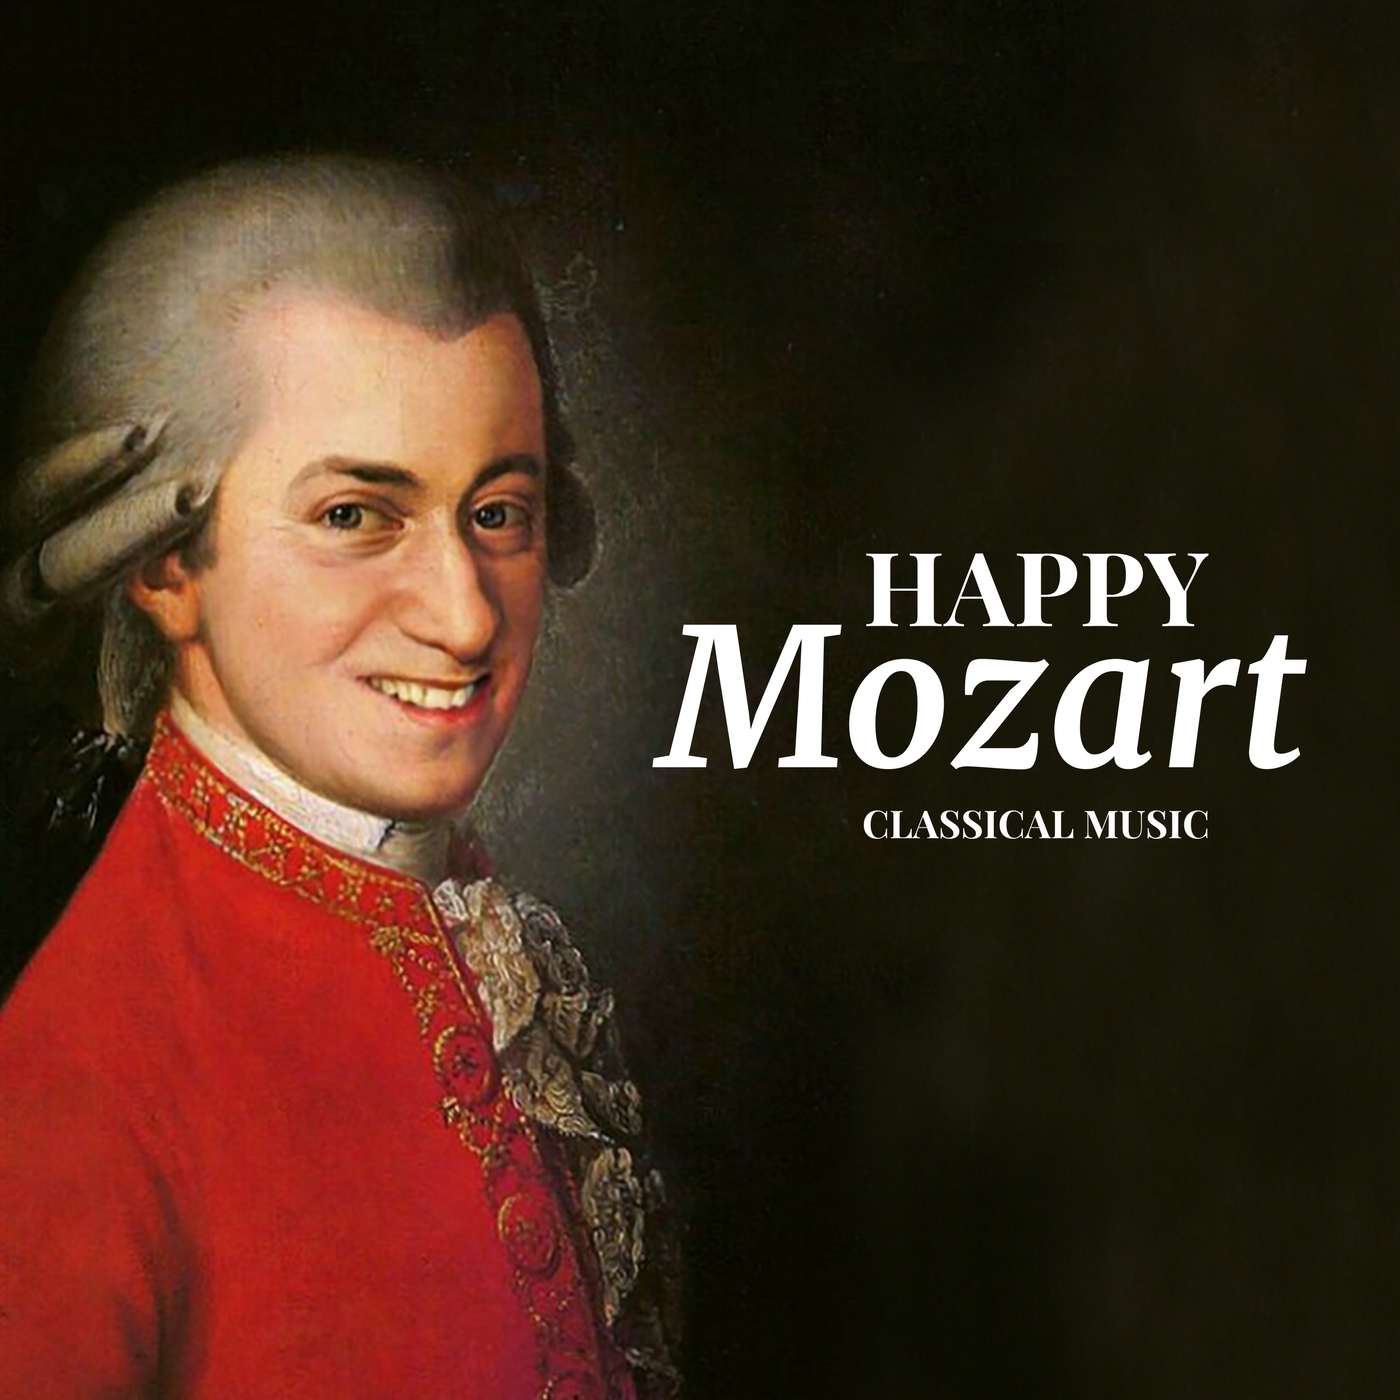 Happy Mozart